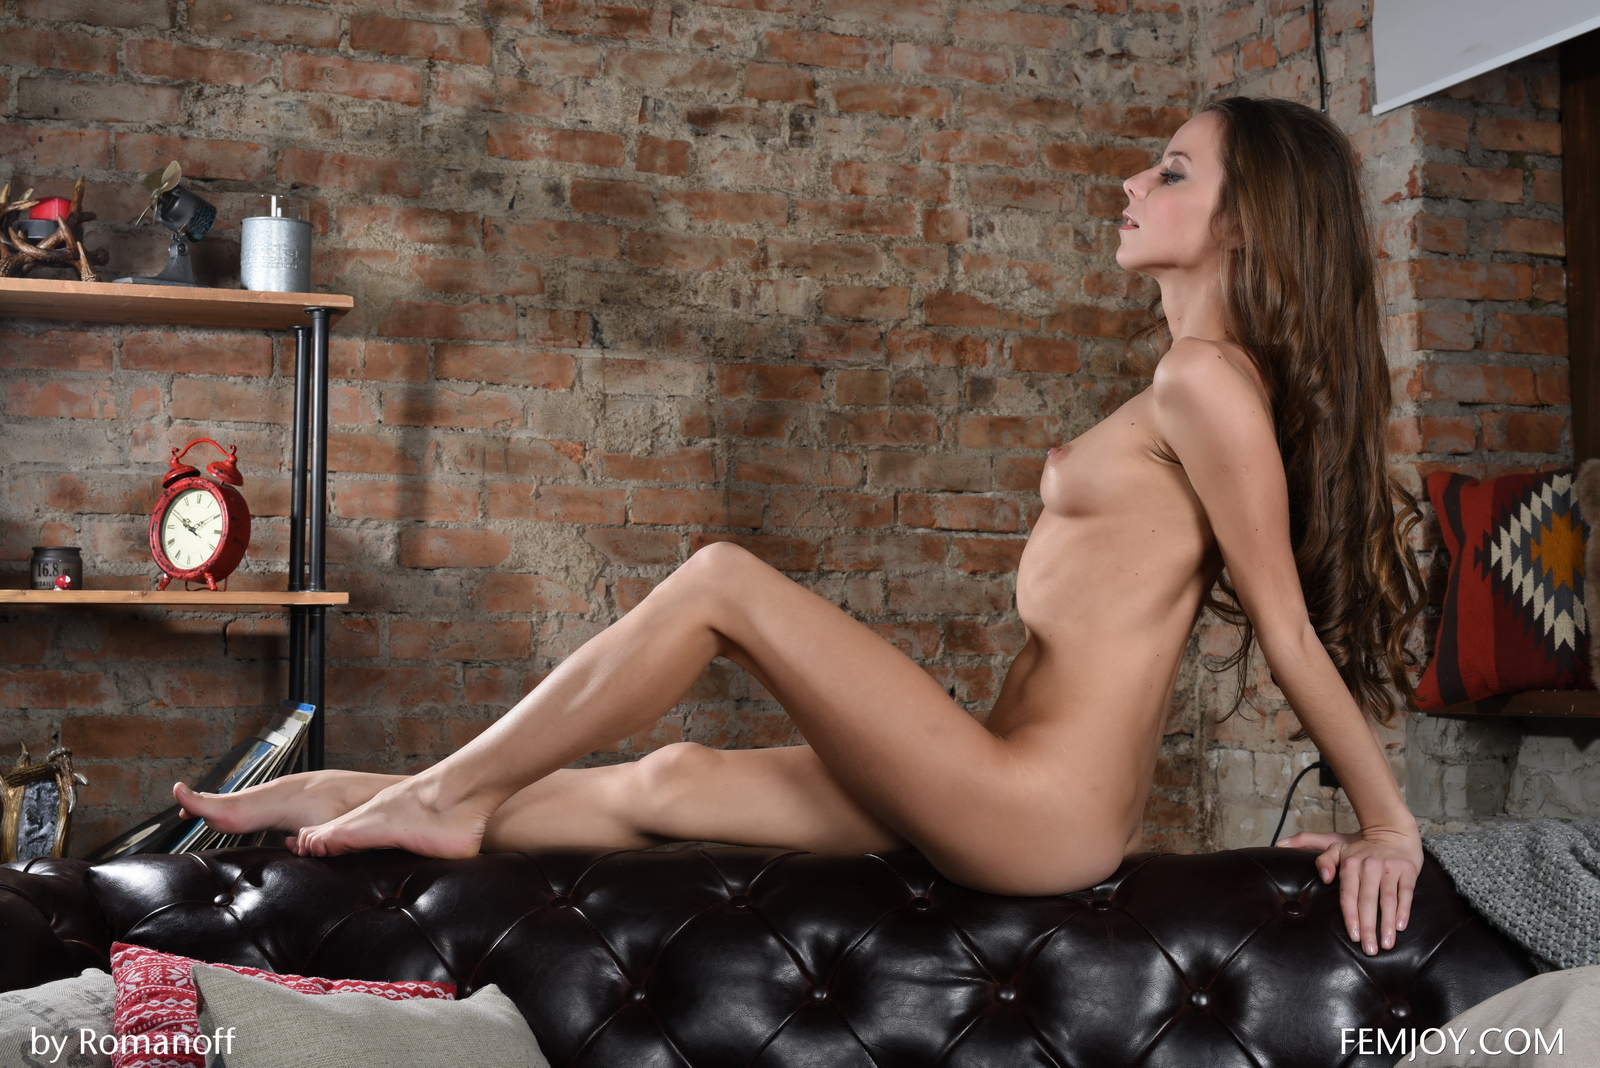 lili-z-skinny-nude-leather-sofa-femjoy-21